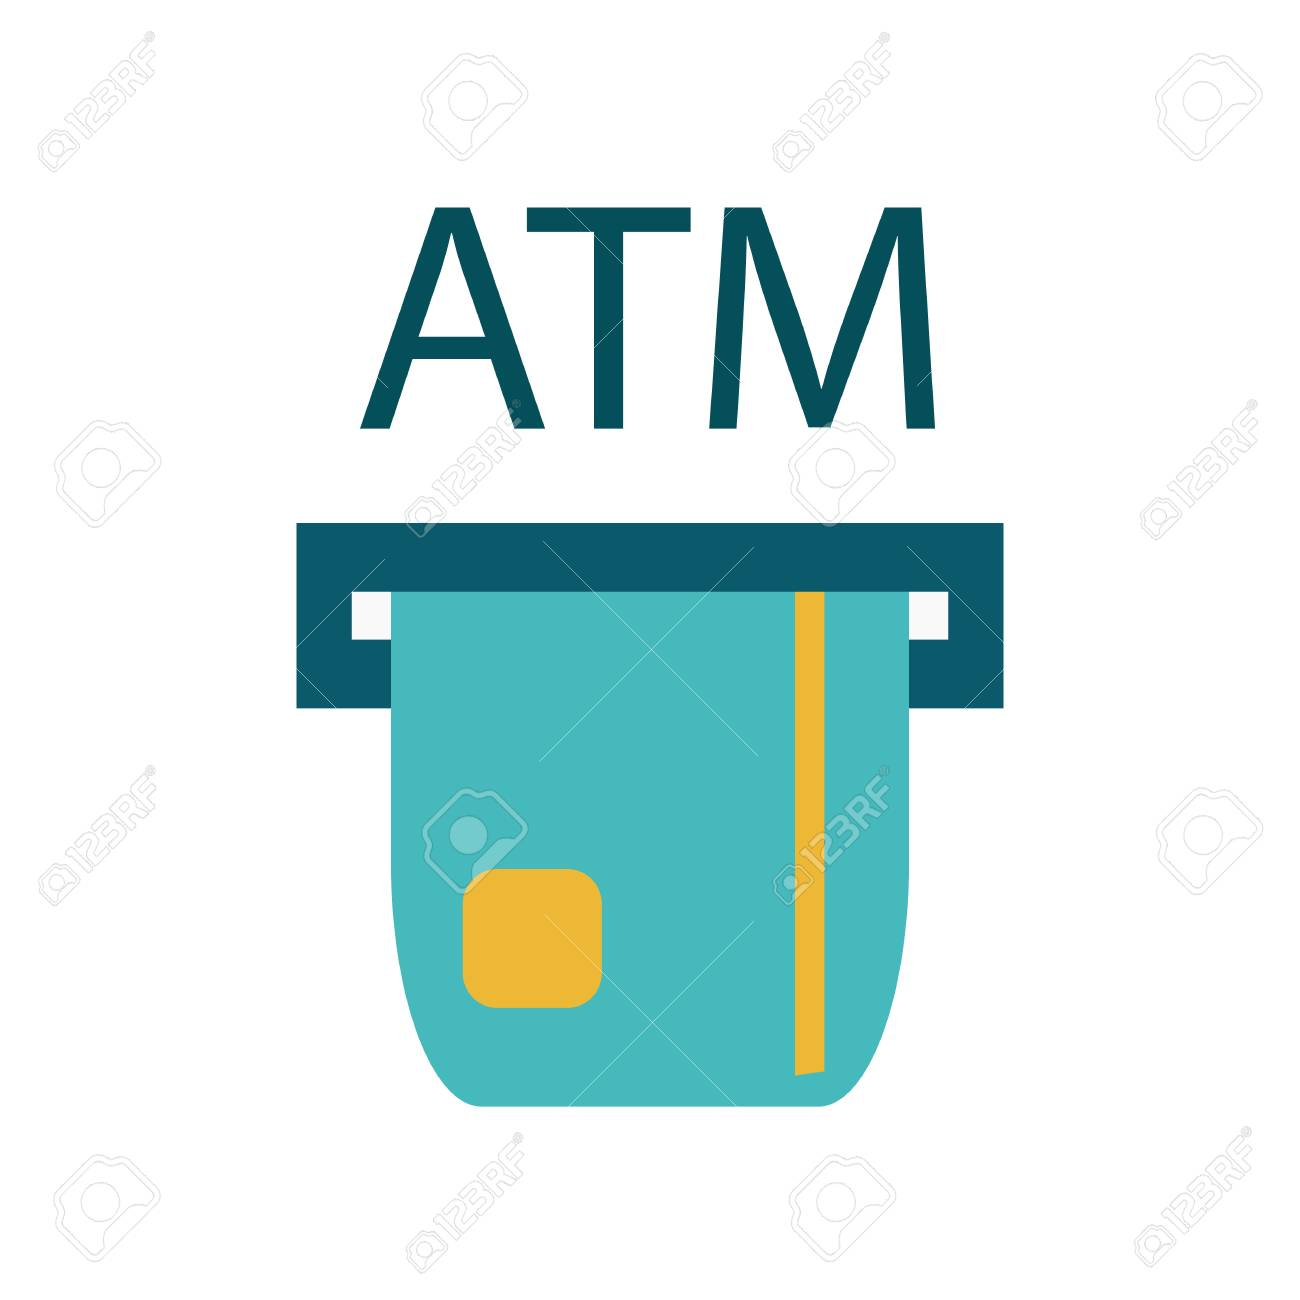 atm payment vector illustration atm machine with hand and credit rh 123rf com major credit card logos vector credit card logos vector download